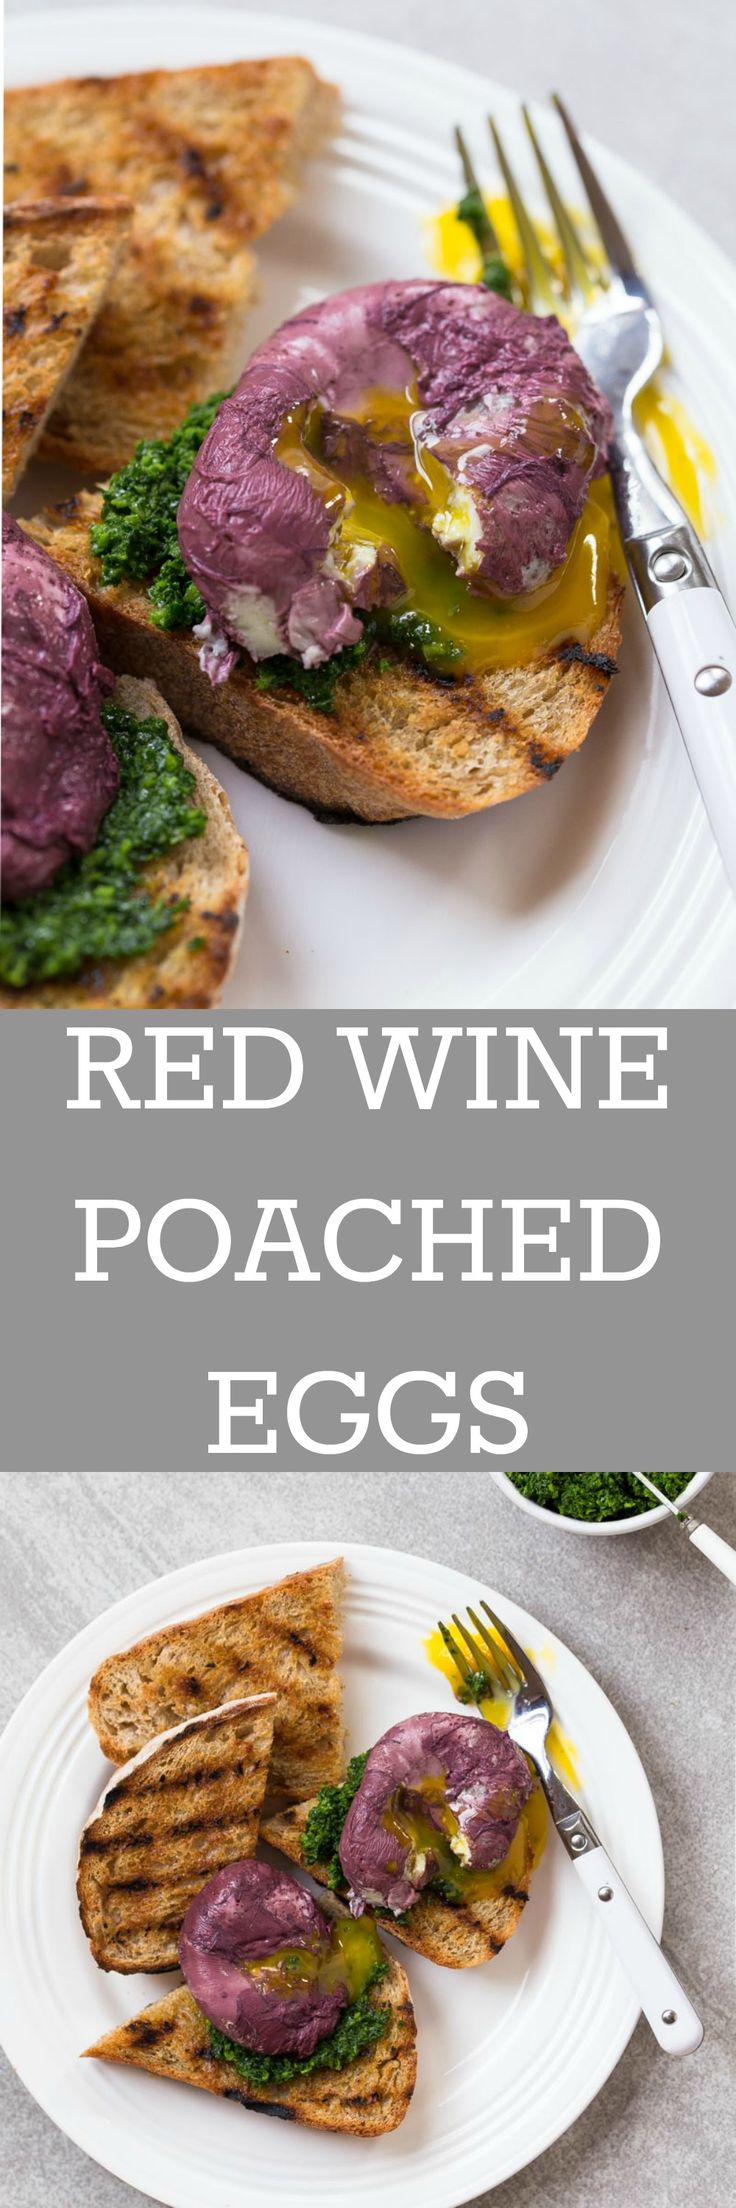 BRUNCH GOALS! Poach eggs in red wine, serve over toast topped with kale pesto! @DessertForTwo